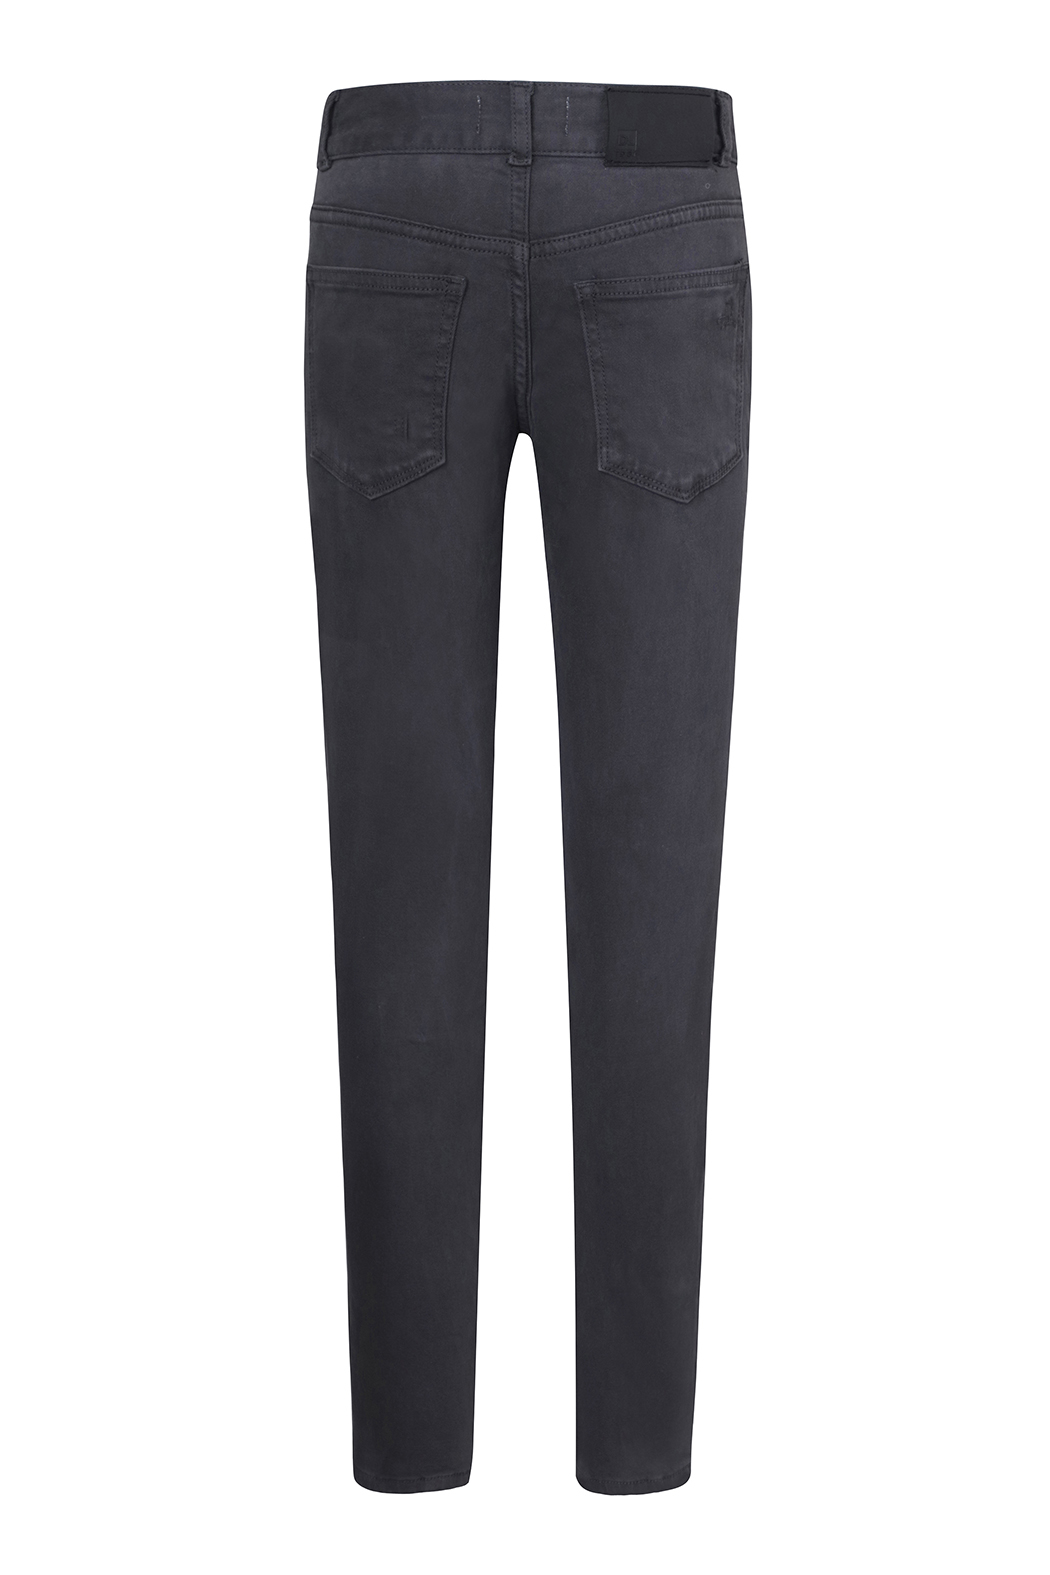 DL1961 Hawke Skinny Youth Jeans Dab - Front Full Image